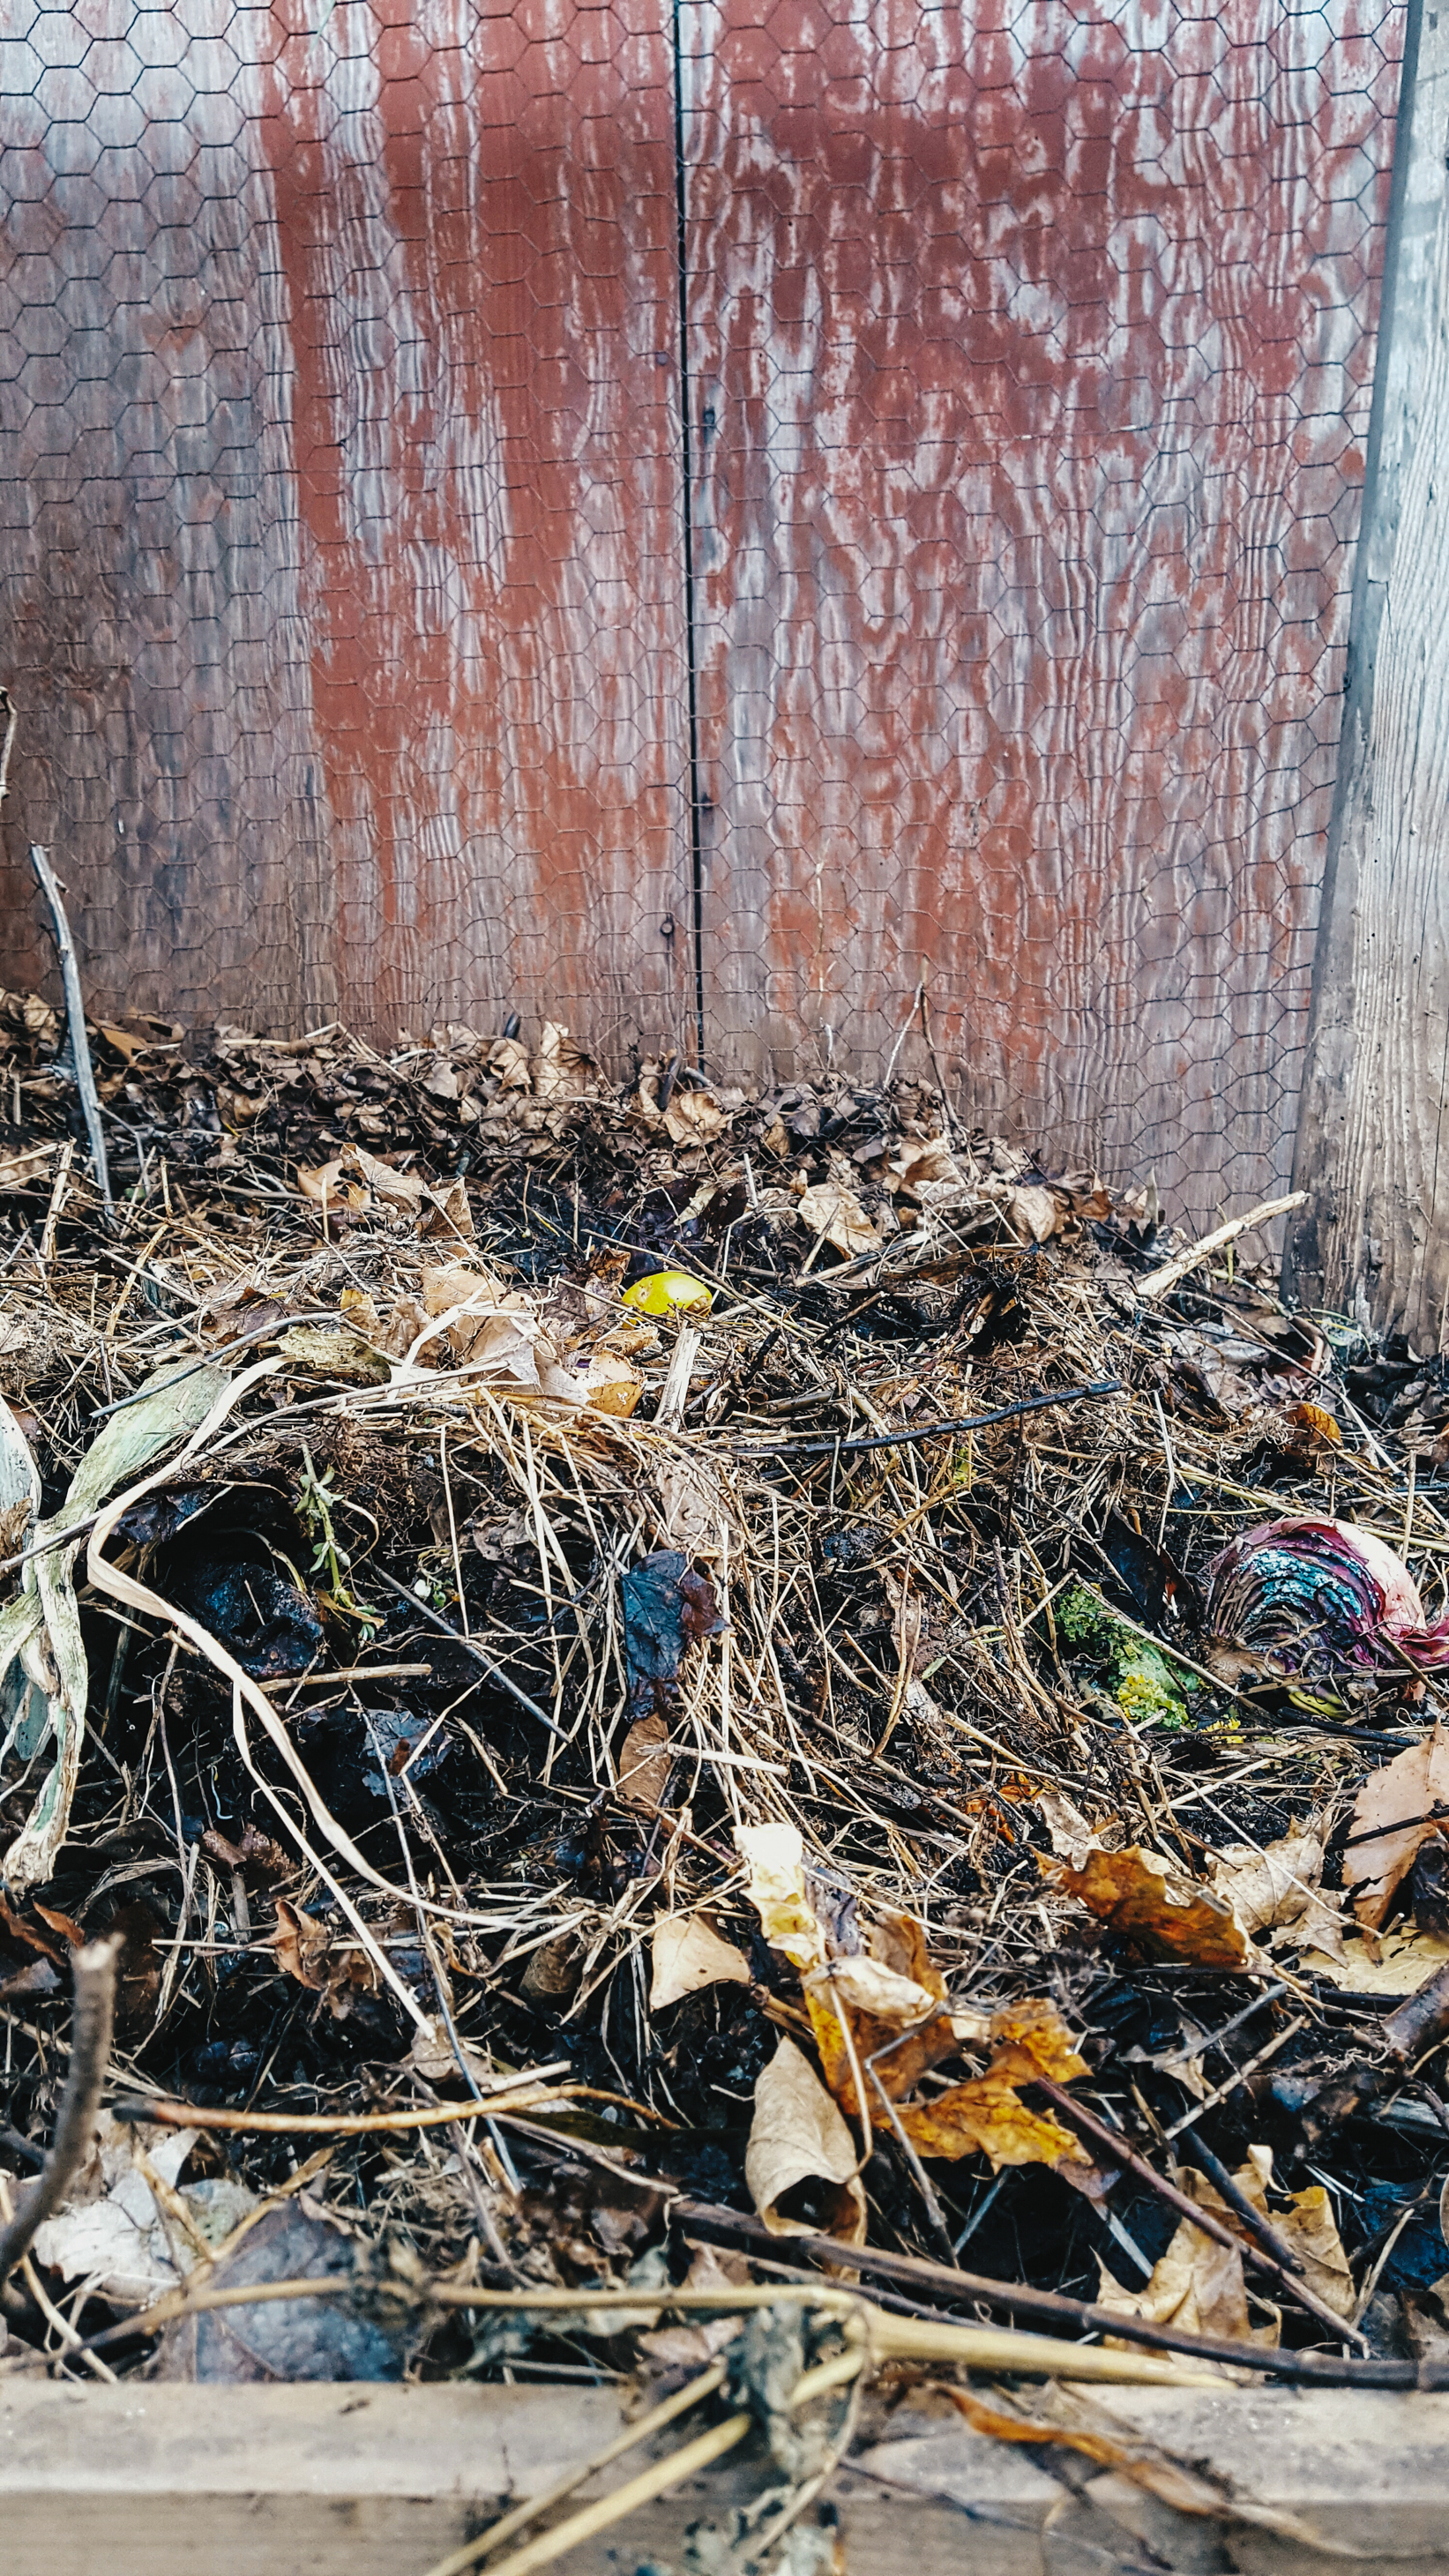 It will take a little time for all the ingredients in your compost pile to break down.